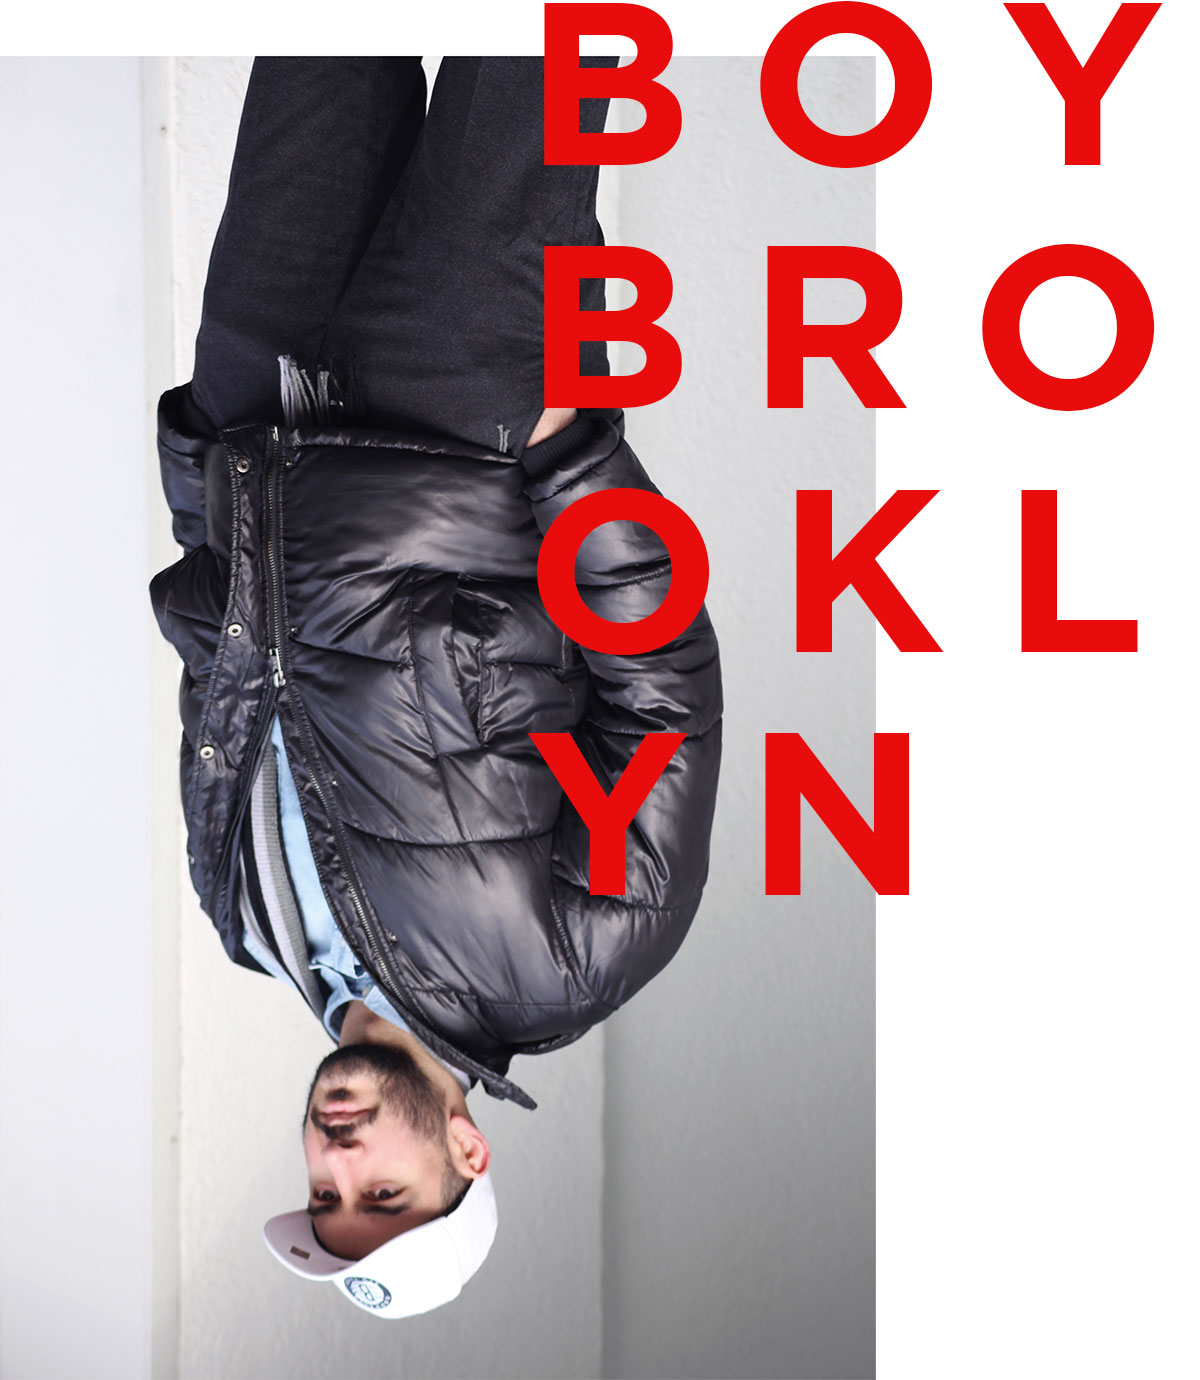 Boy_Brooklyn_02